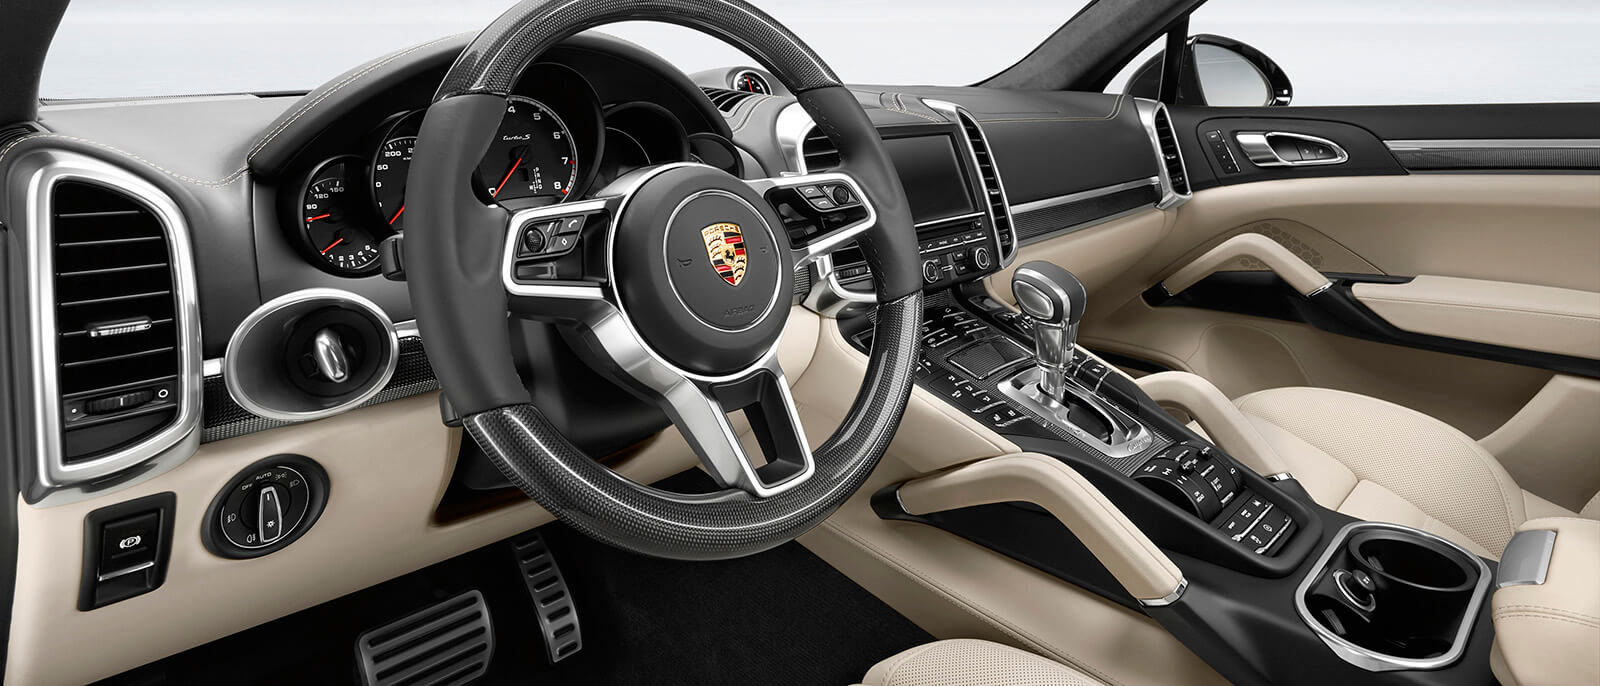 Test The Power Of 2017 Porsche Cayenne Turbo S Yourself: porsche cayenne interior parts